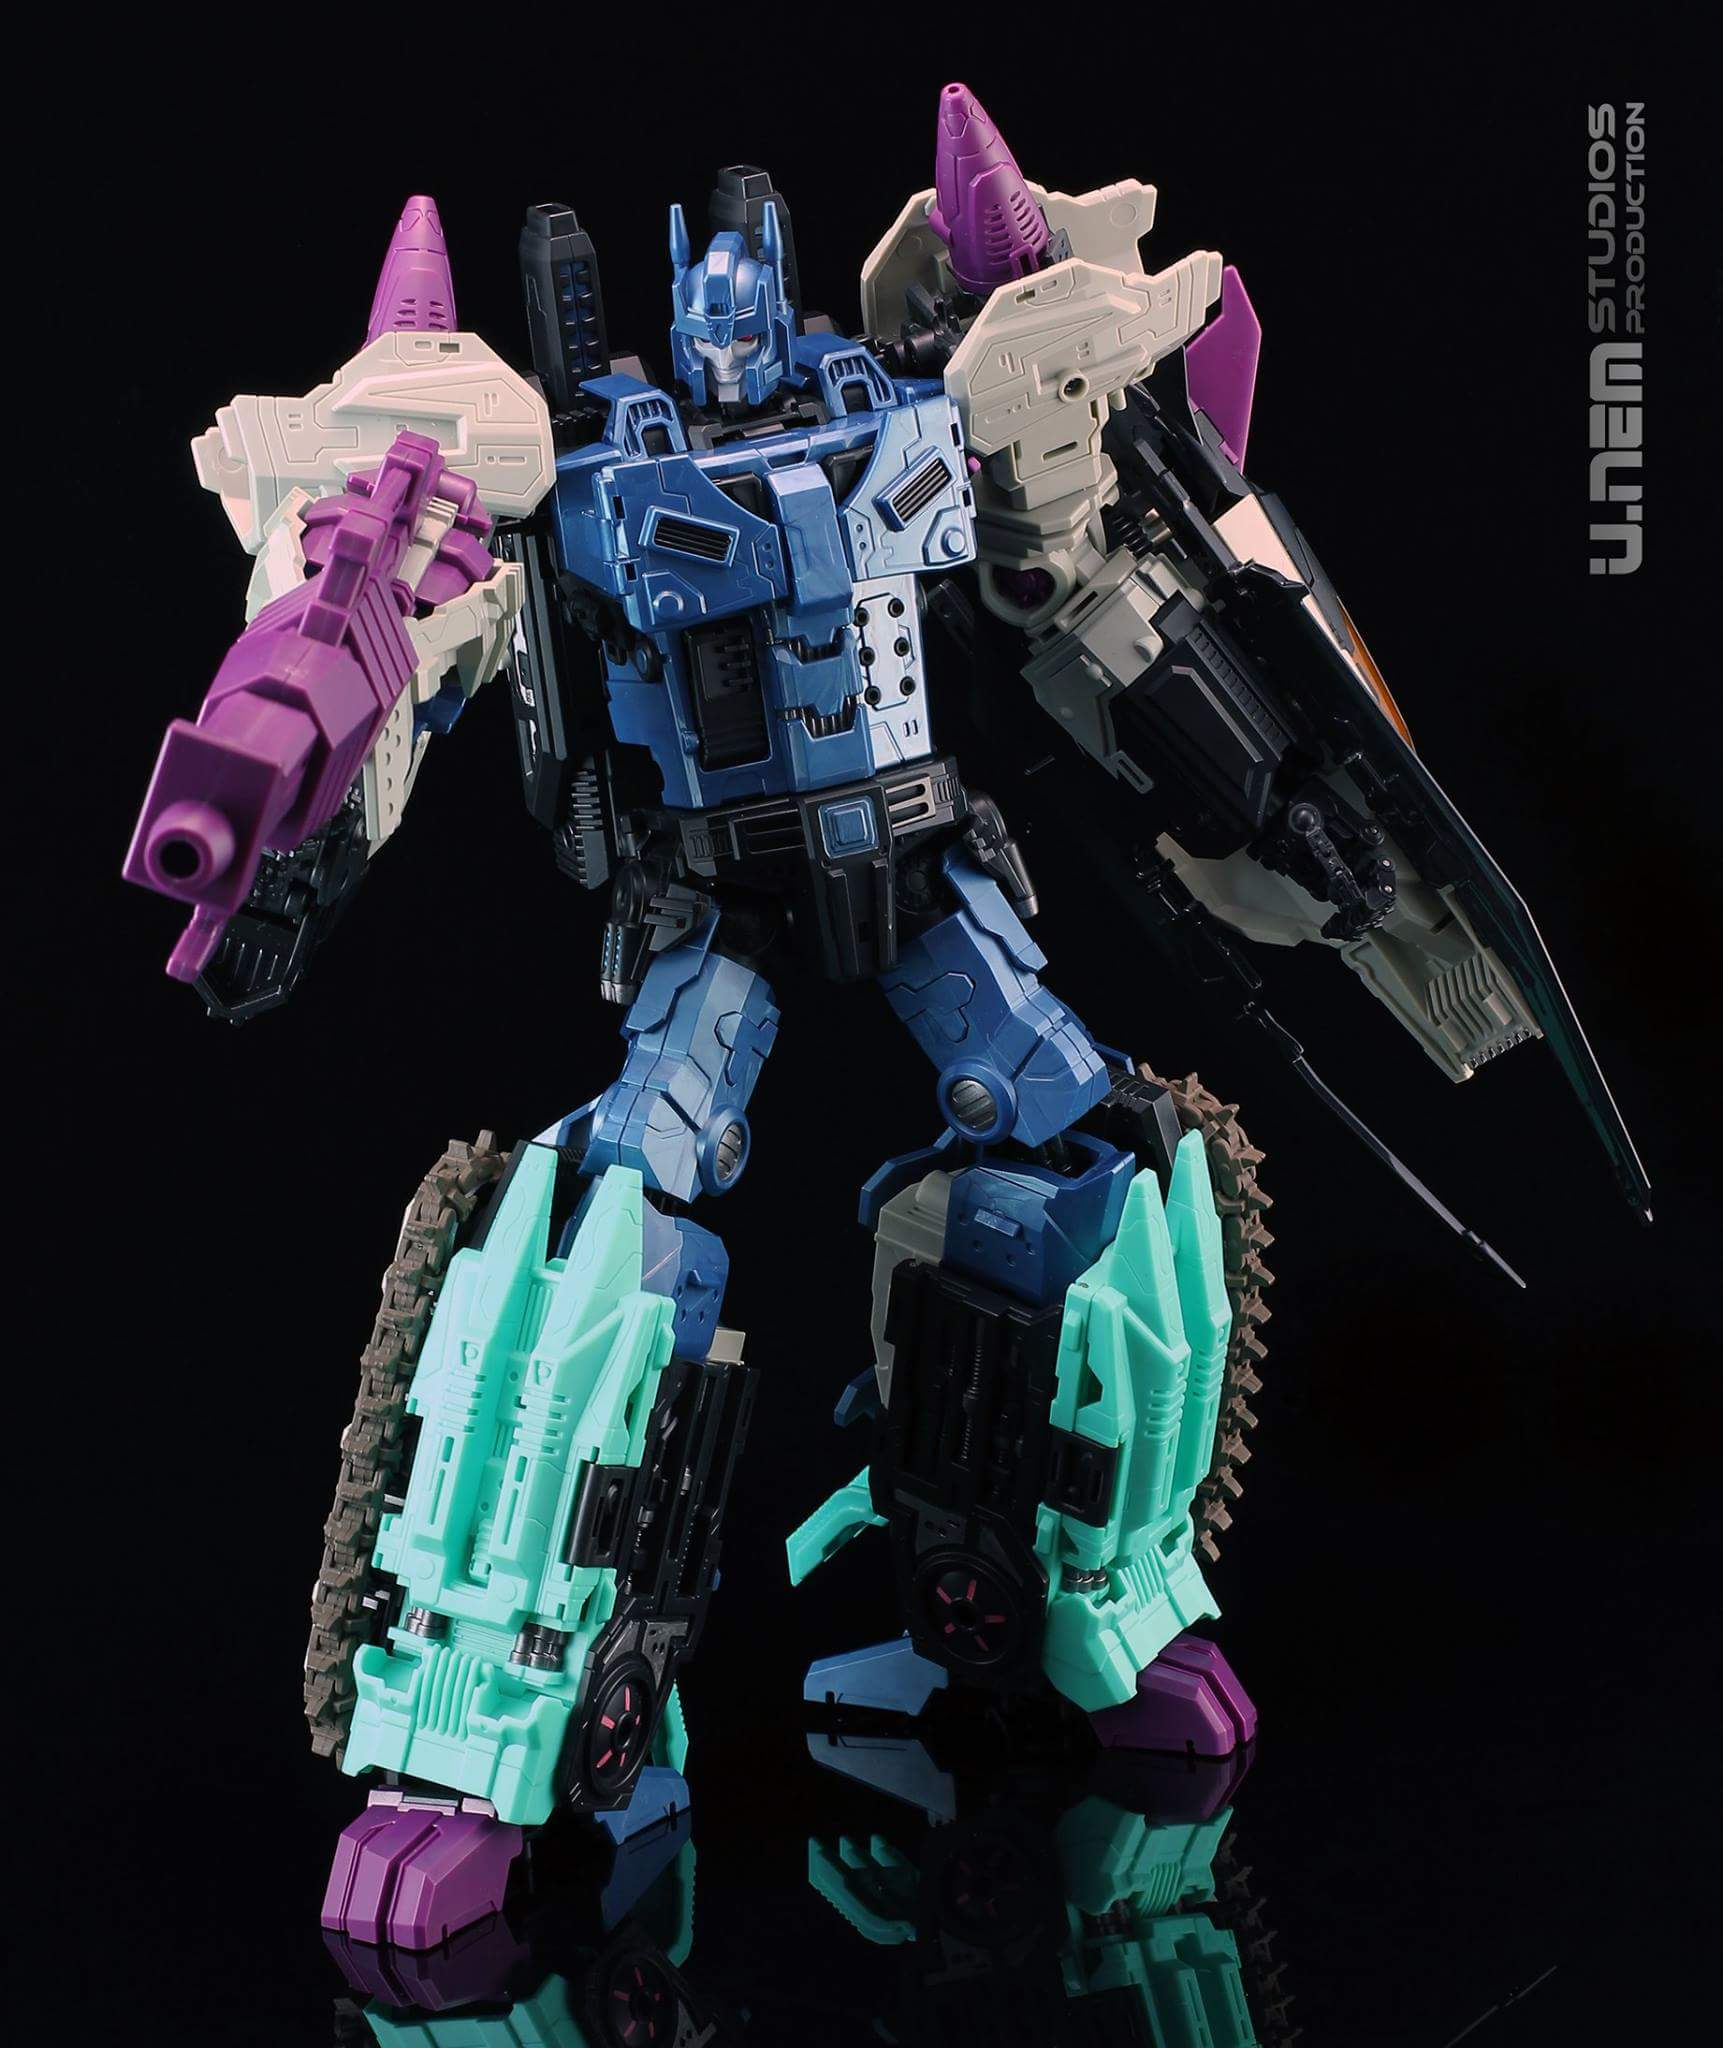 [Mastermind Creations] Produit Tiers - R-17 Carnifex - aka Overlord (TF Masterforce) - Page 2 I3JSxirH